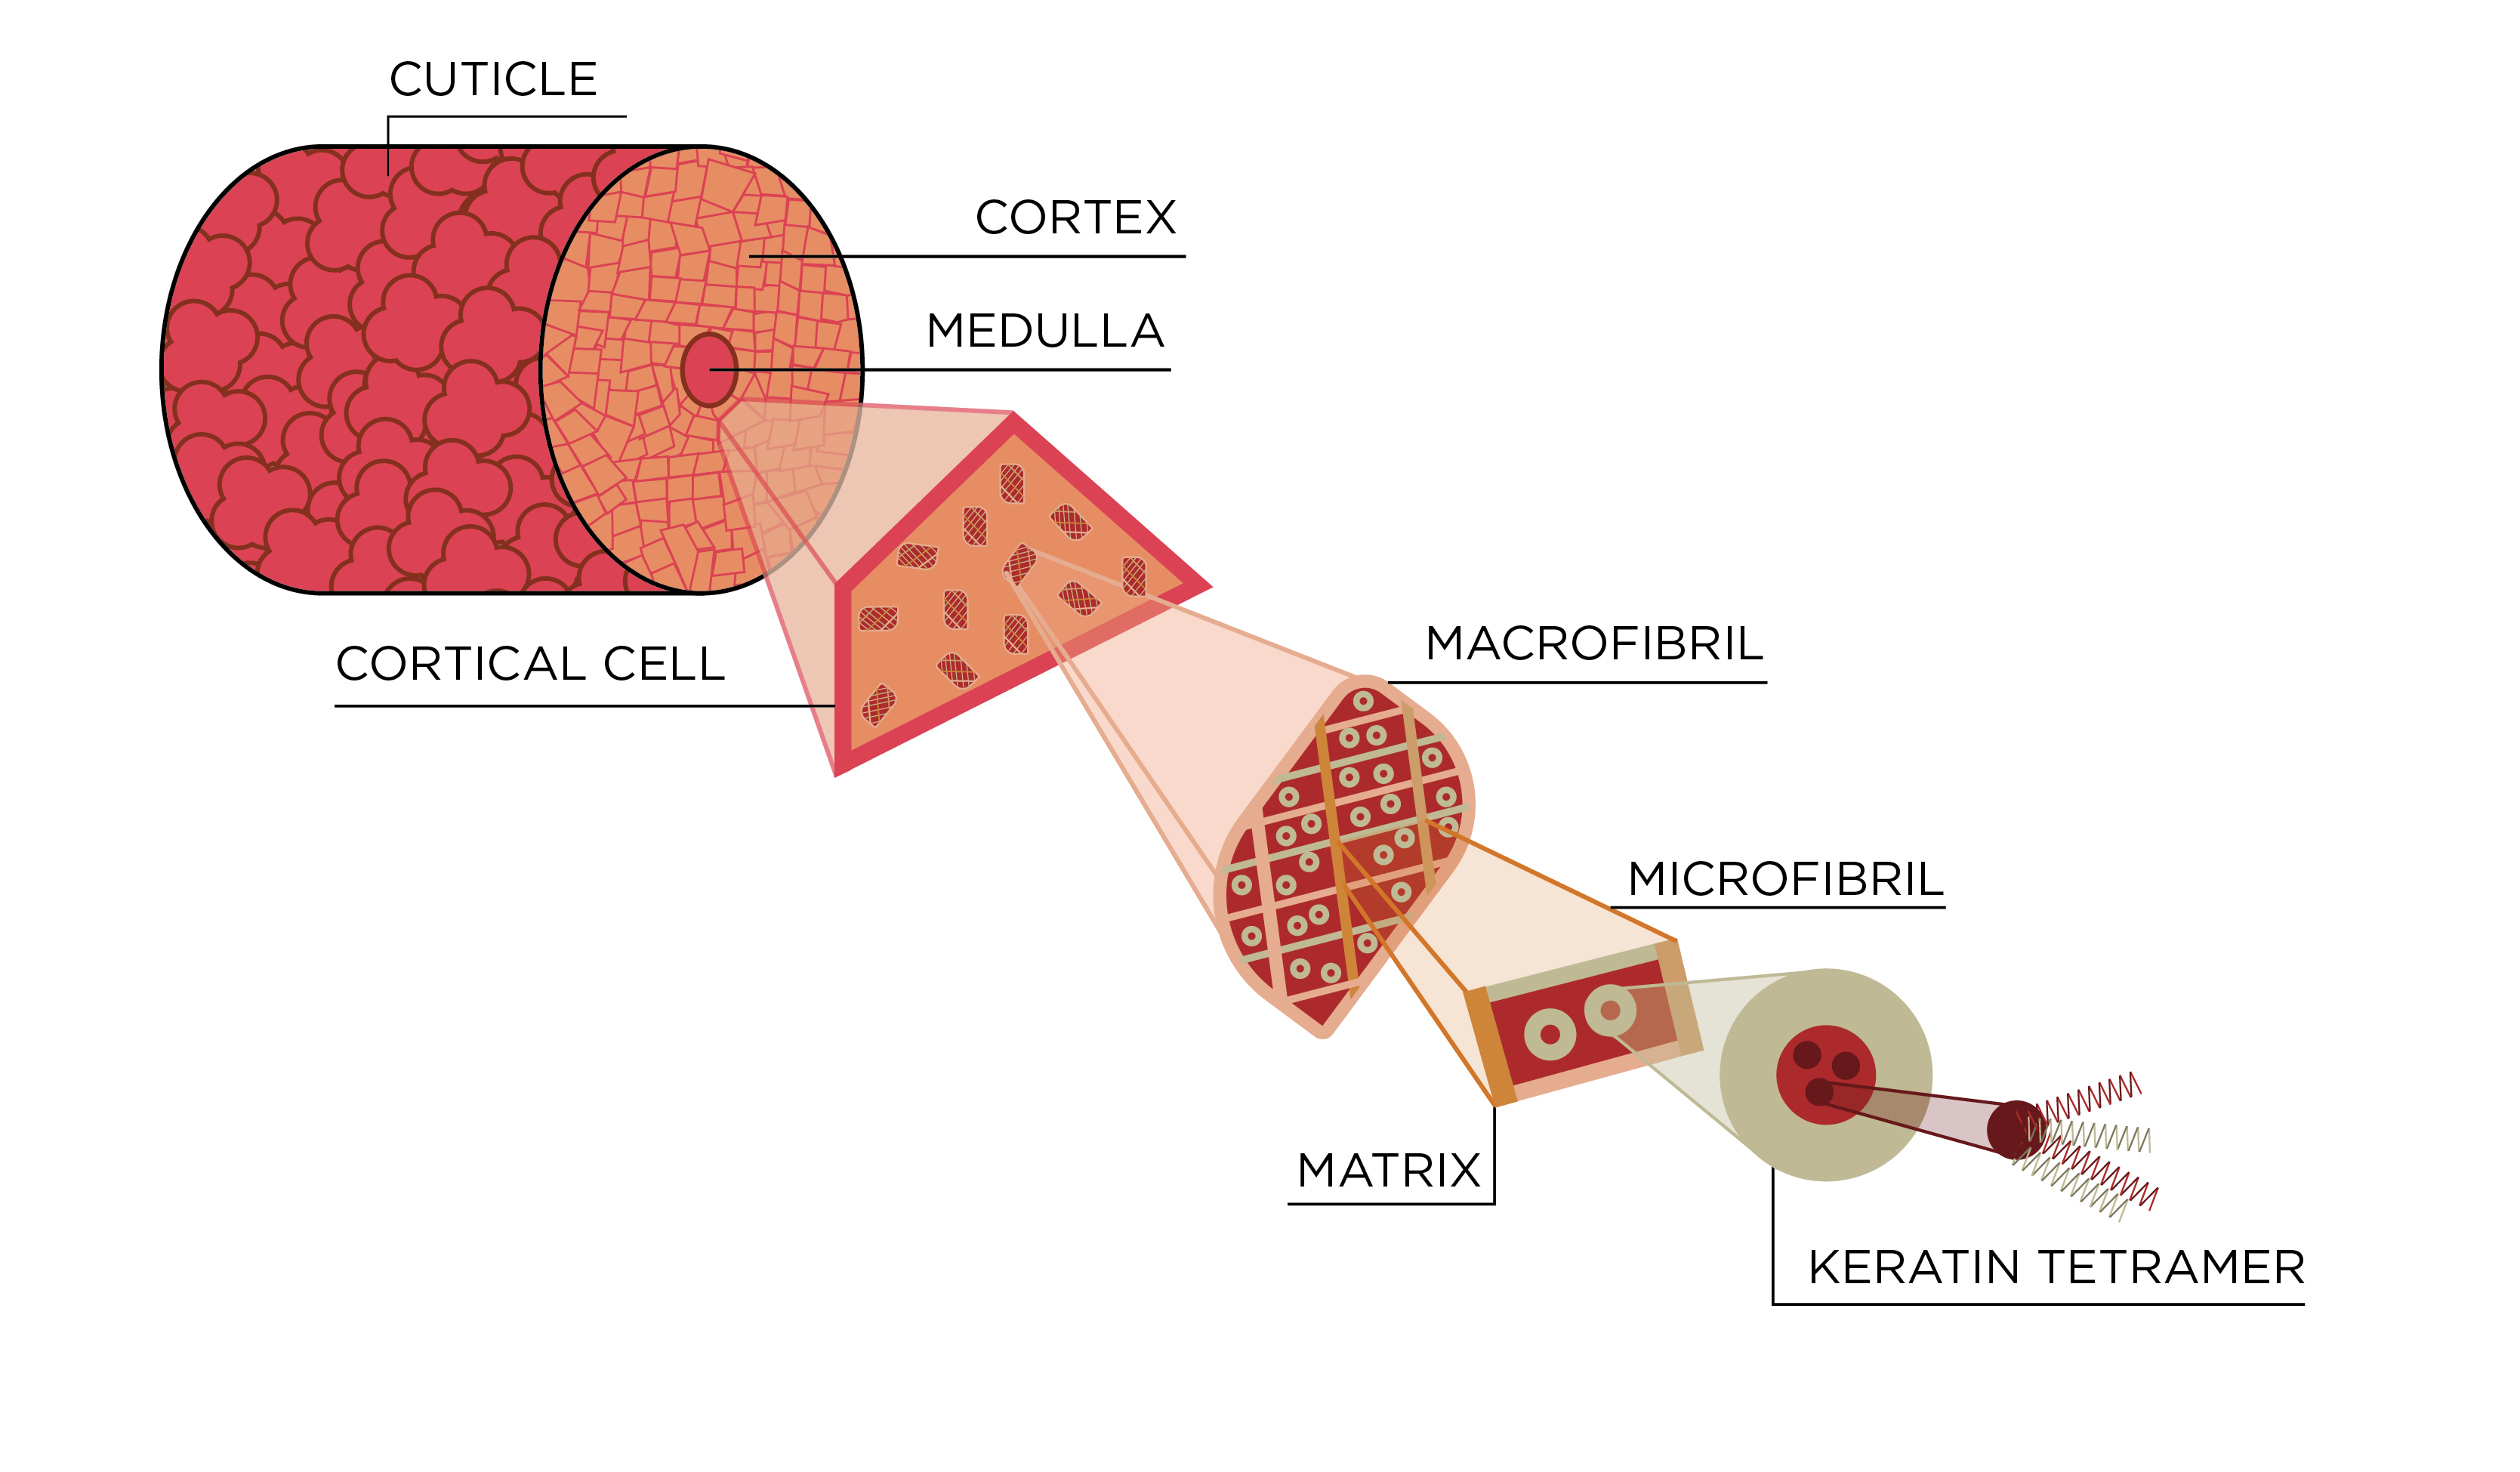 A cross section of a hair showing how it is composed of keratin fibers that are braided together to form larger fibers.